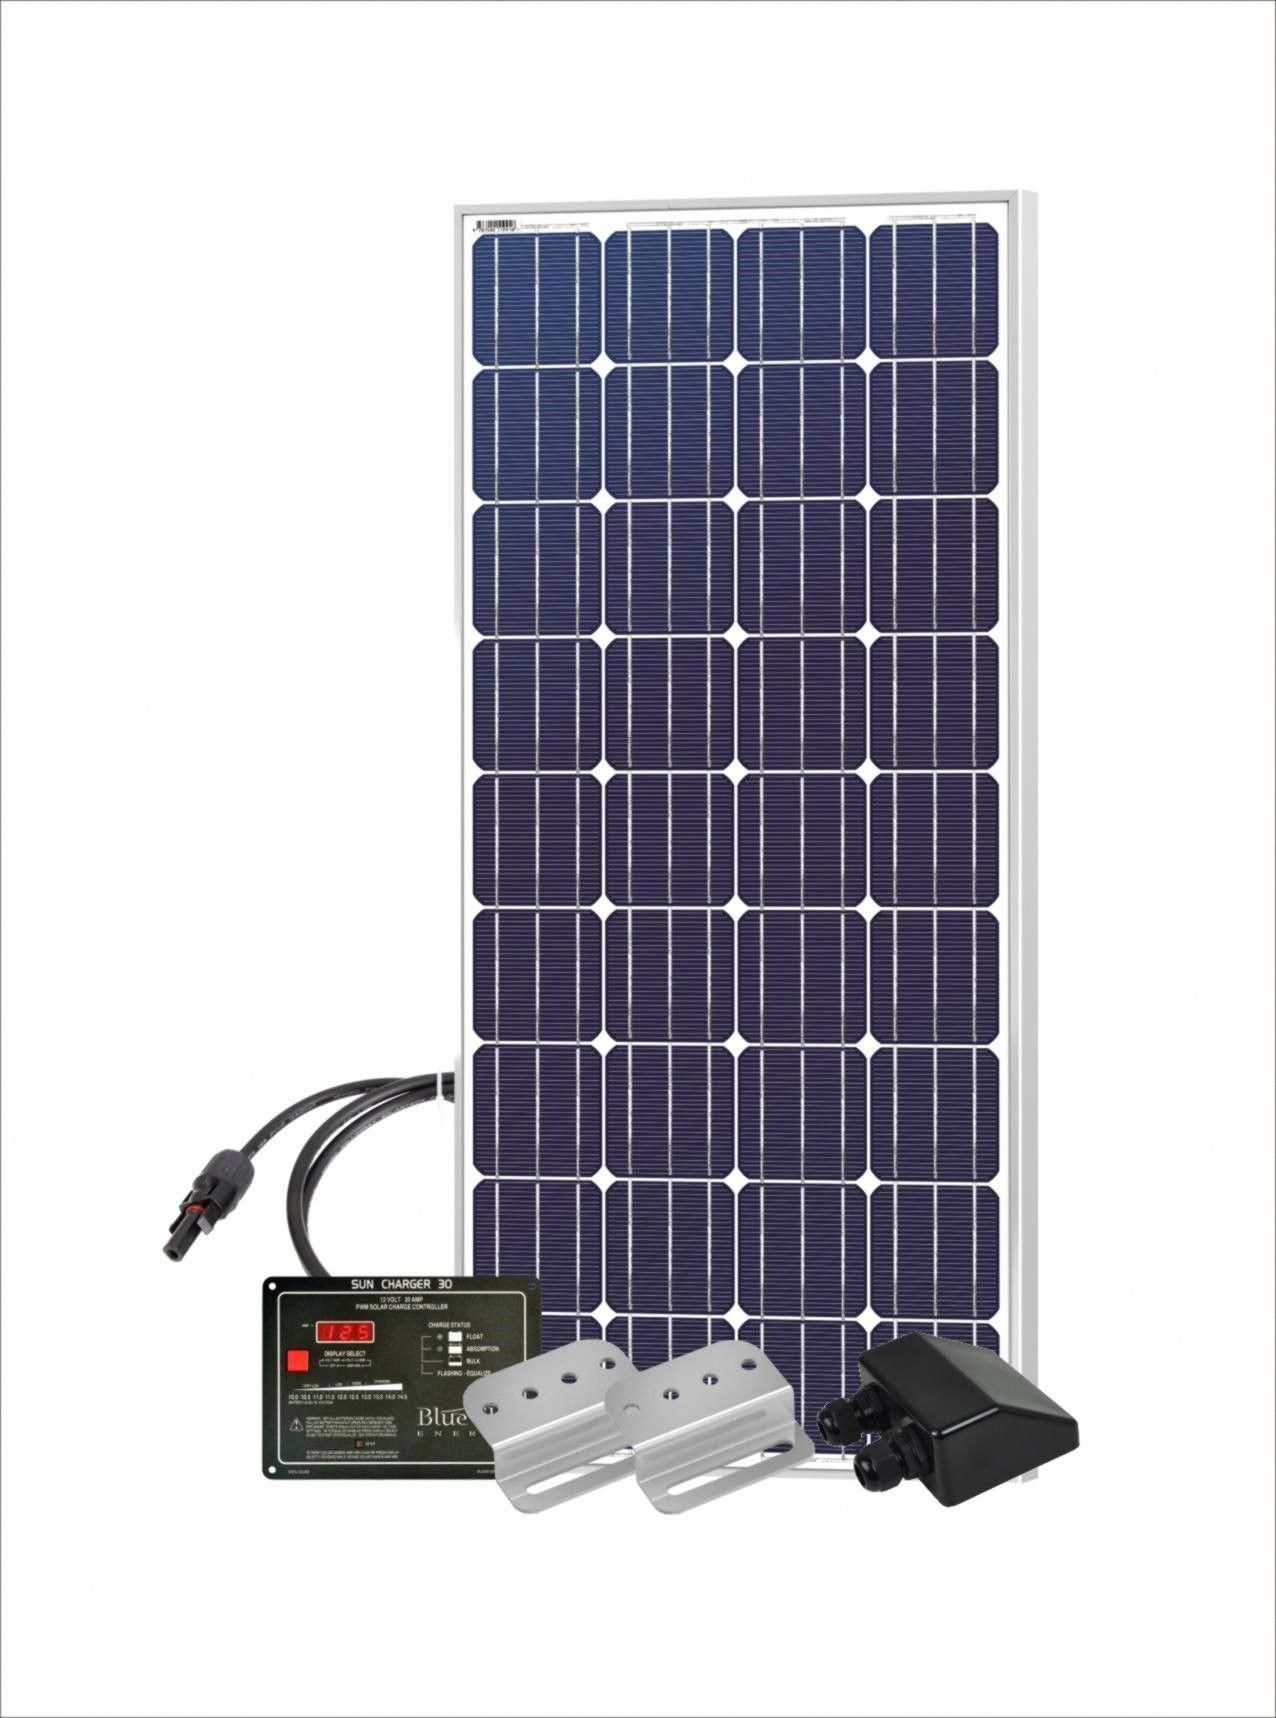 150 Watt 12 Volt Dc Rv Solar Panel Starter Kit With 150w Solar Panel Blue Sky Energy Sc30 Charge Controll In 2020 Rv Solar Panels Solar Energy Panels Best Solar Panels